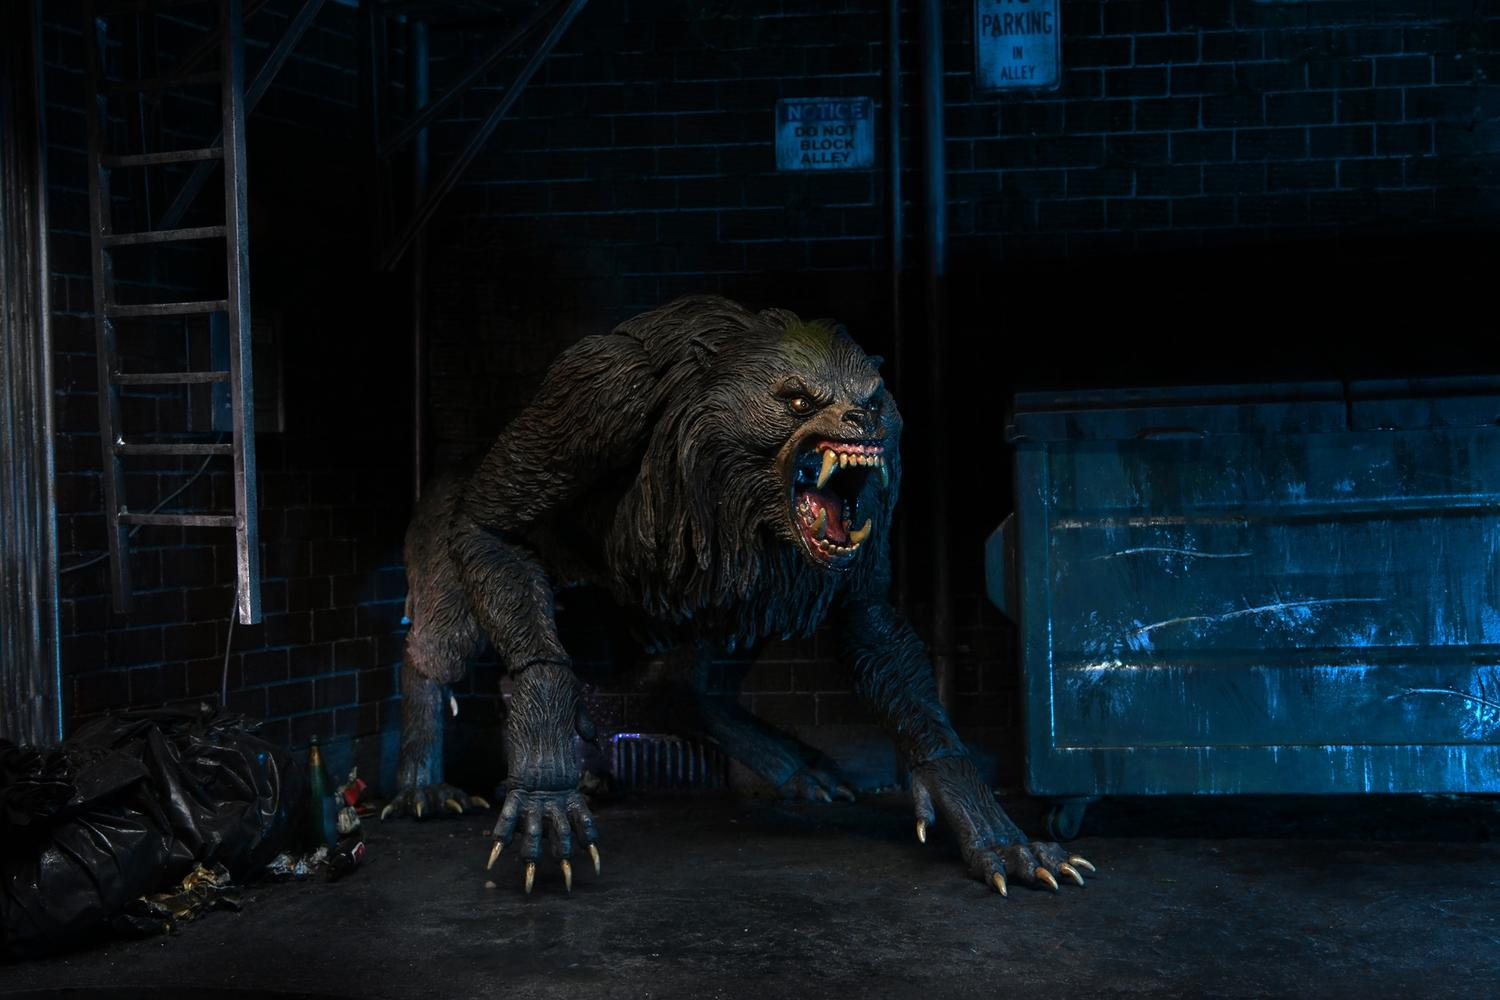 NECA Unveils American Werewolf In London-151496093_3936768303052192_4204400096028385777_o.jpg